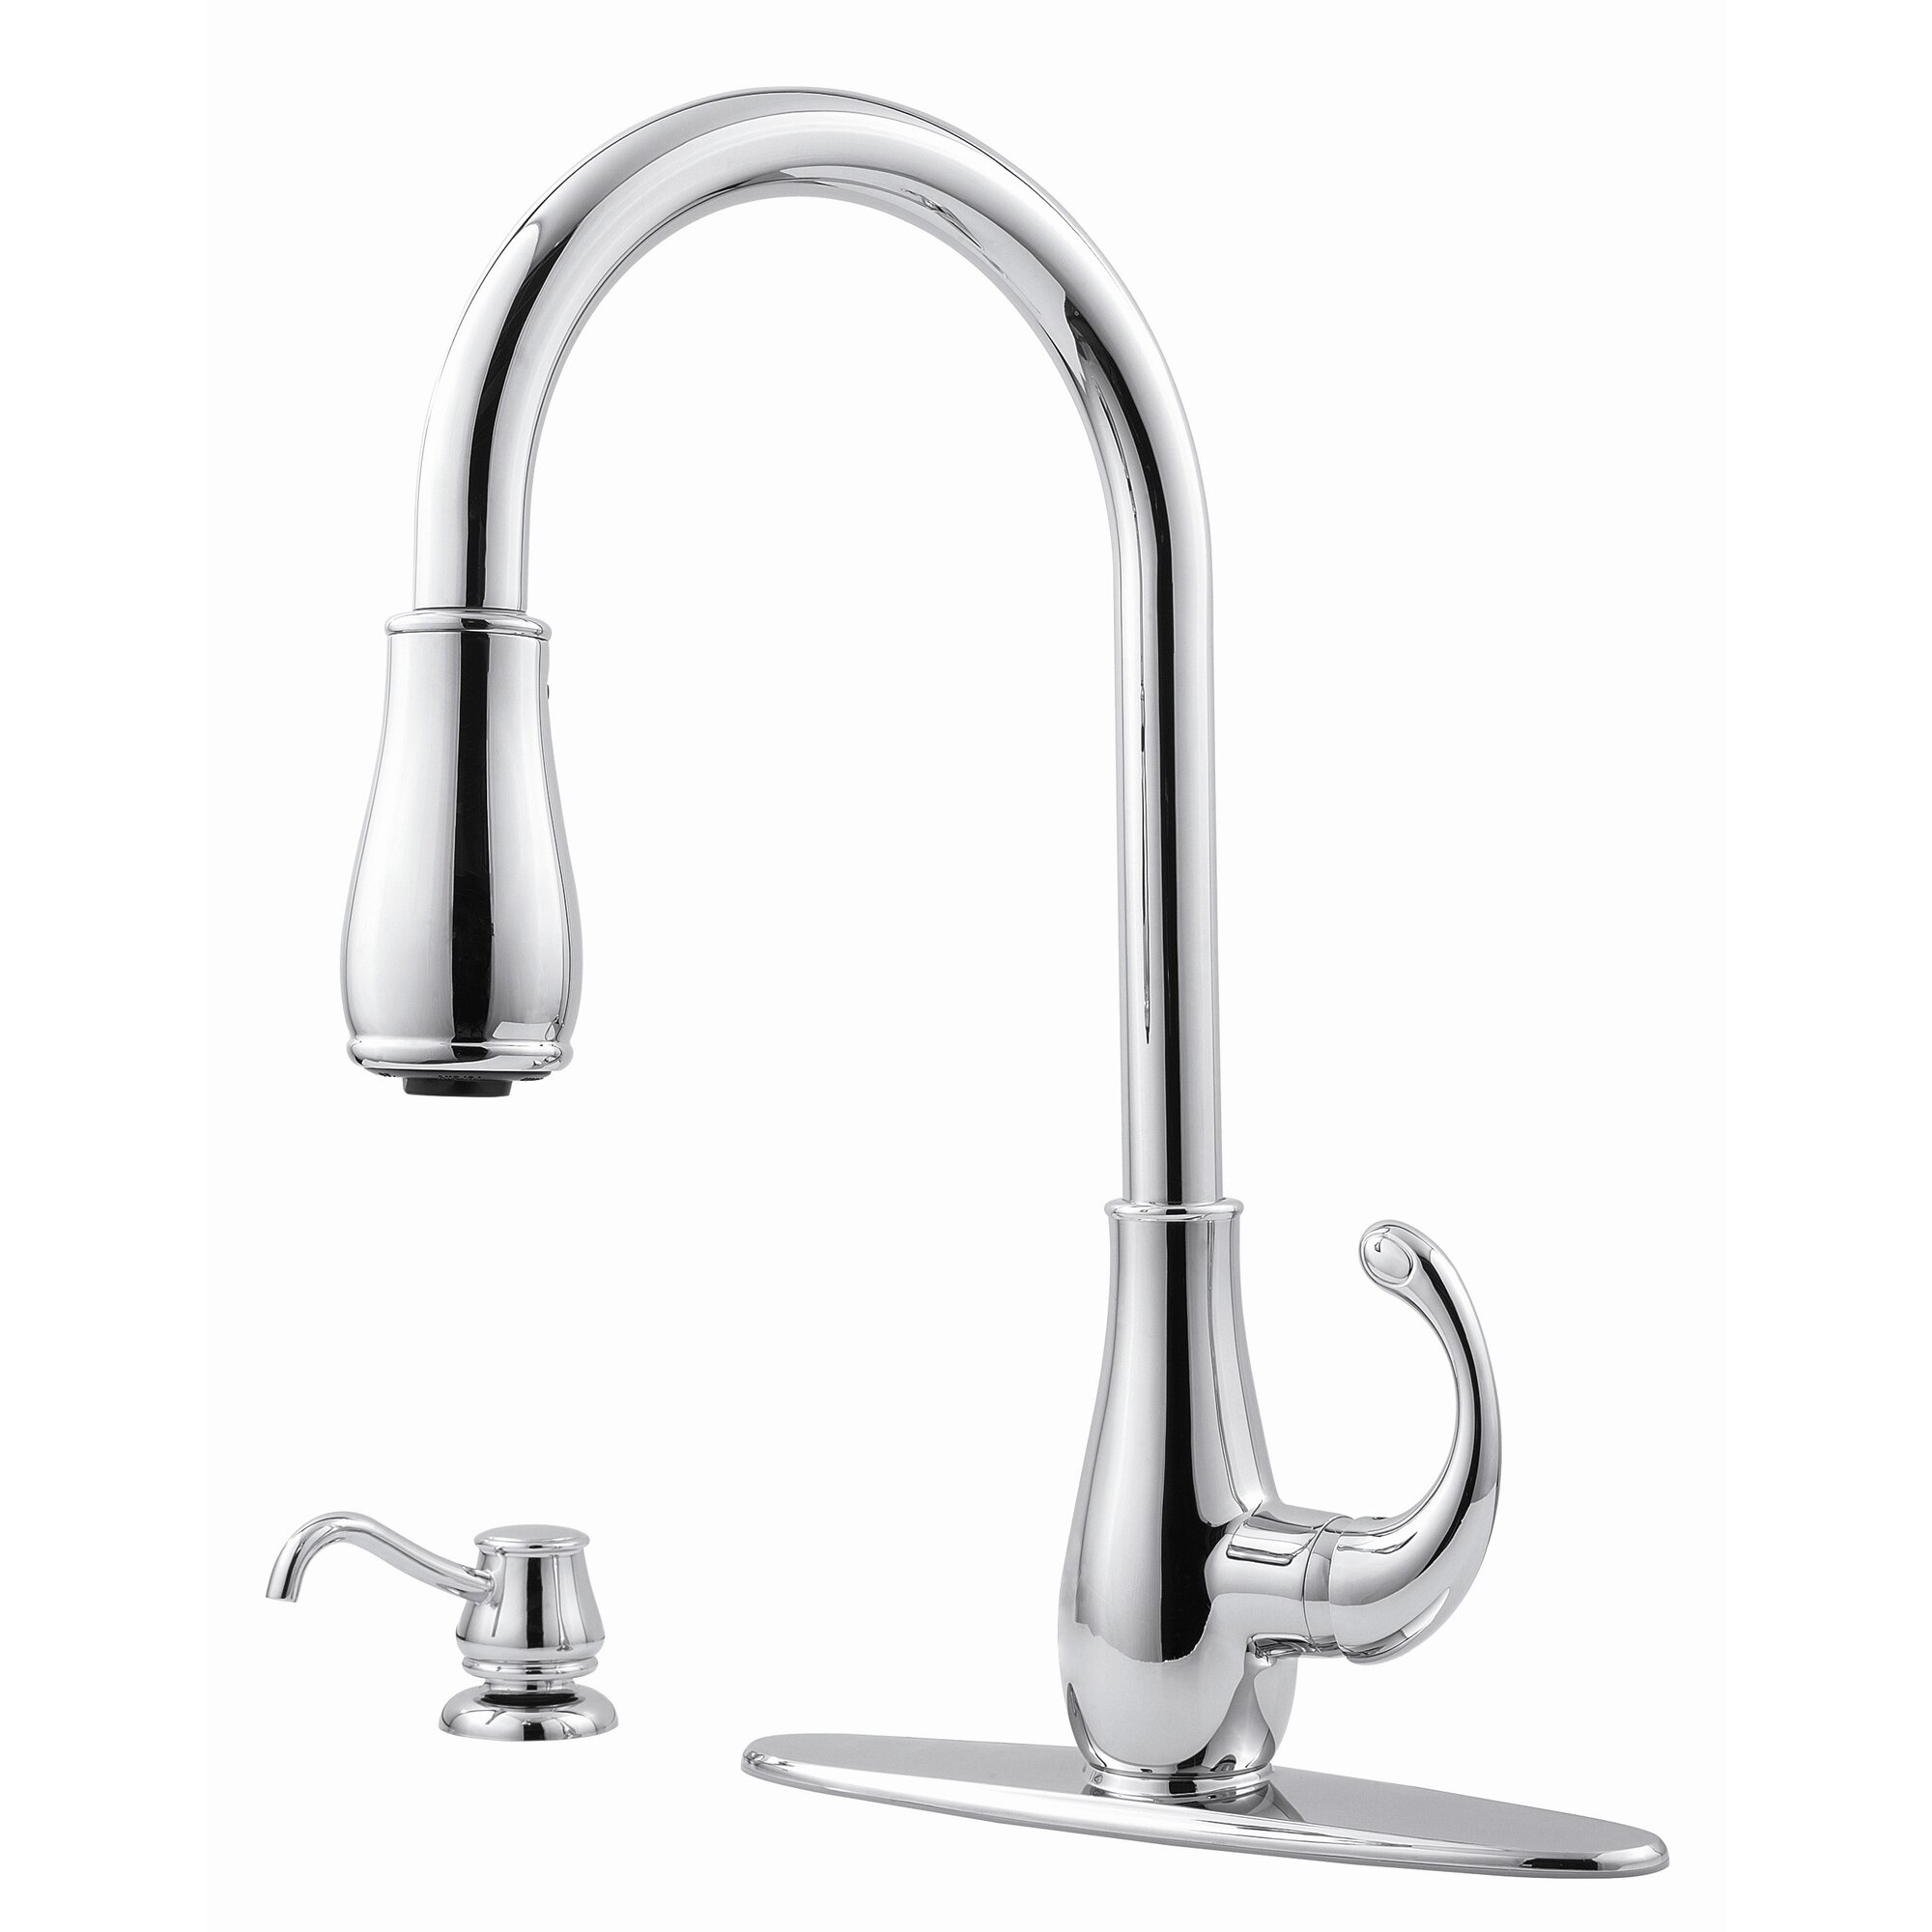 Treviso Single Handle Deck Mounted Kitchen Faucet With Soap Dispenser